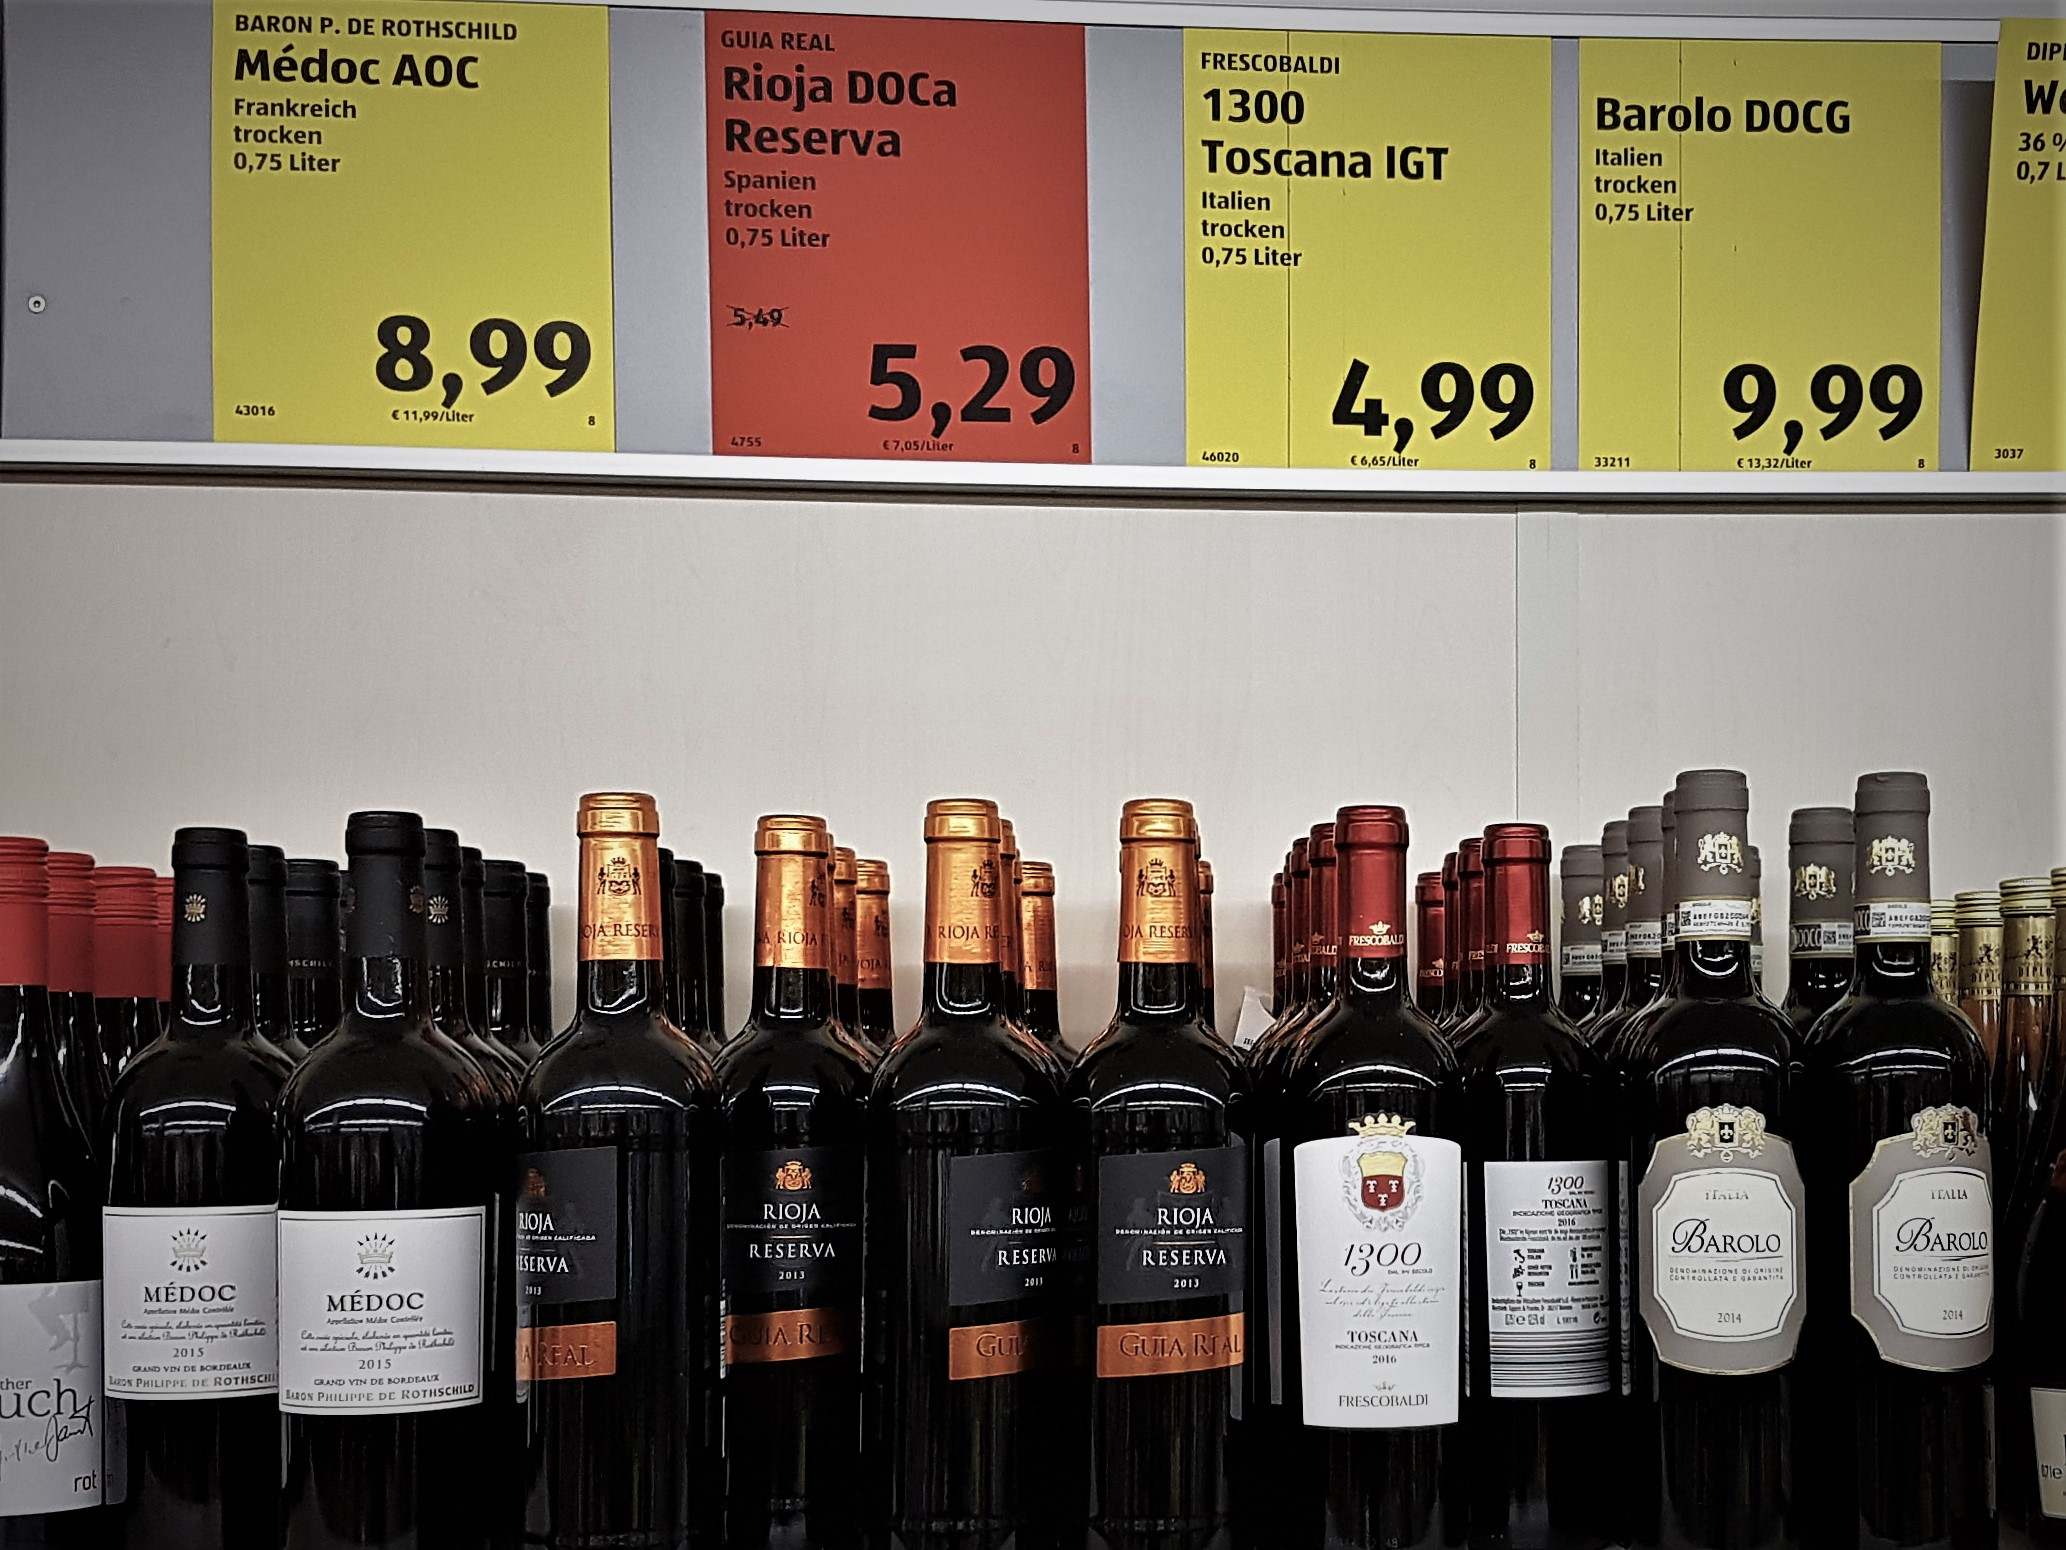 Shelf of wine bottles at Aldi.